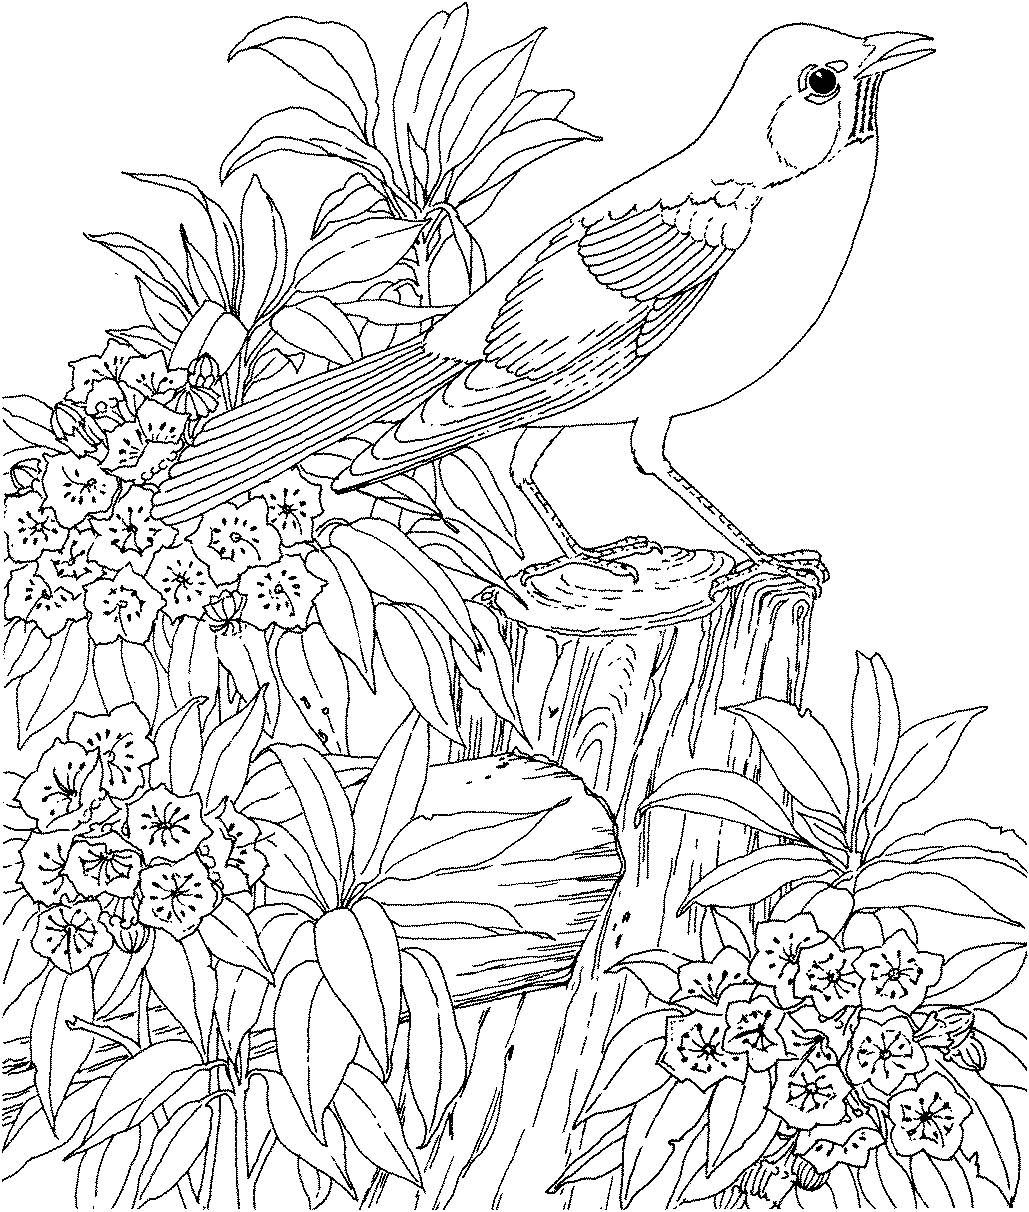 Childrens online colouring book - The Traditional Way Of Learning To Color Pages Was To Draw And Then Color However In